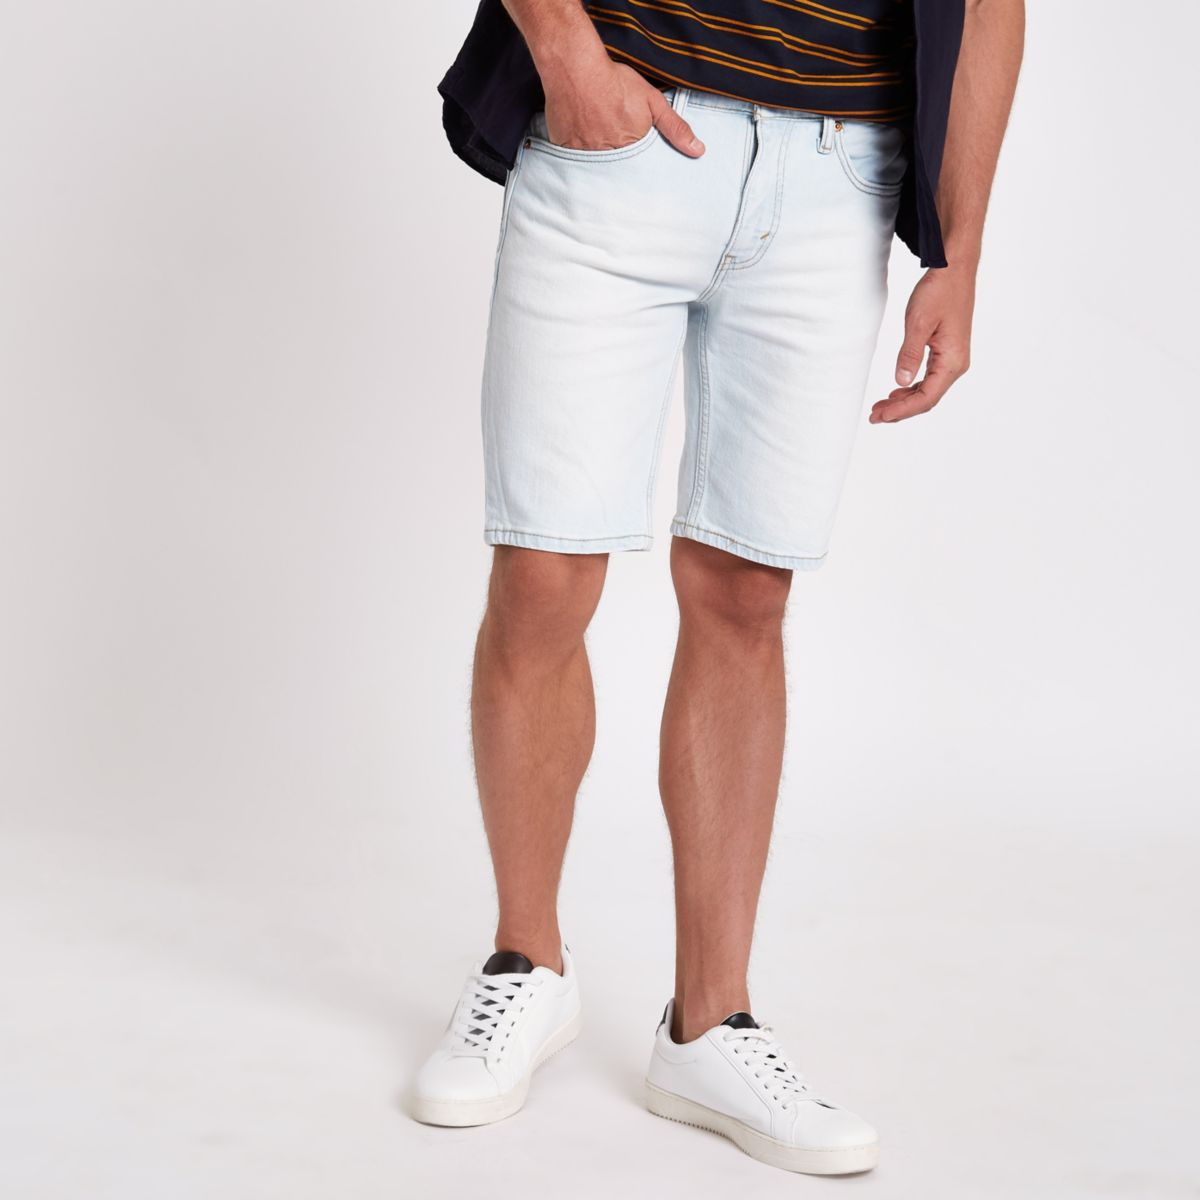 Light blue Levi's 511 slim fit denim shorts